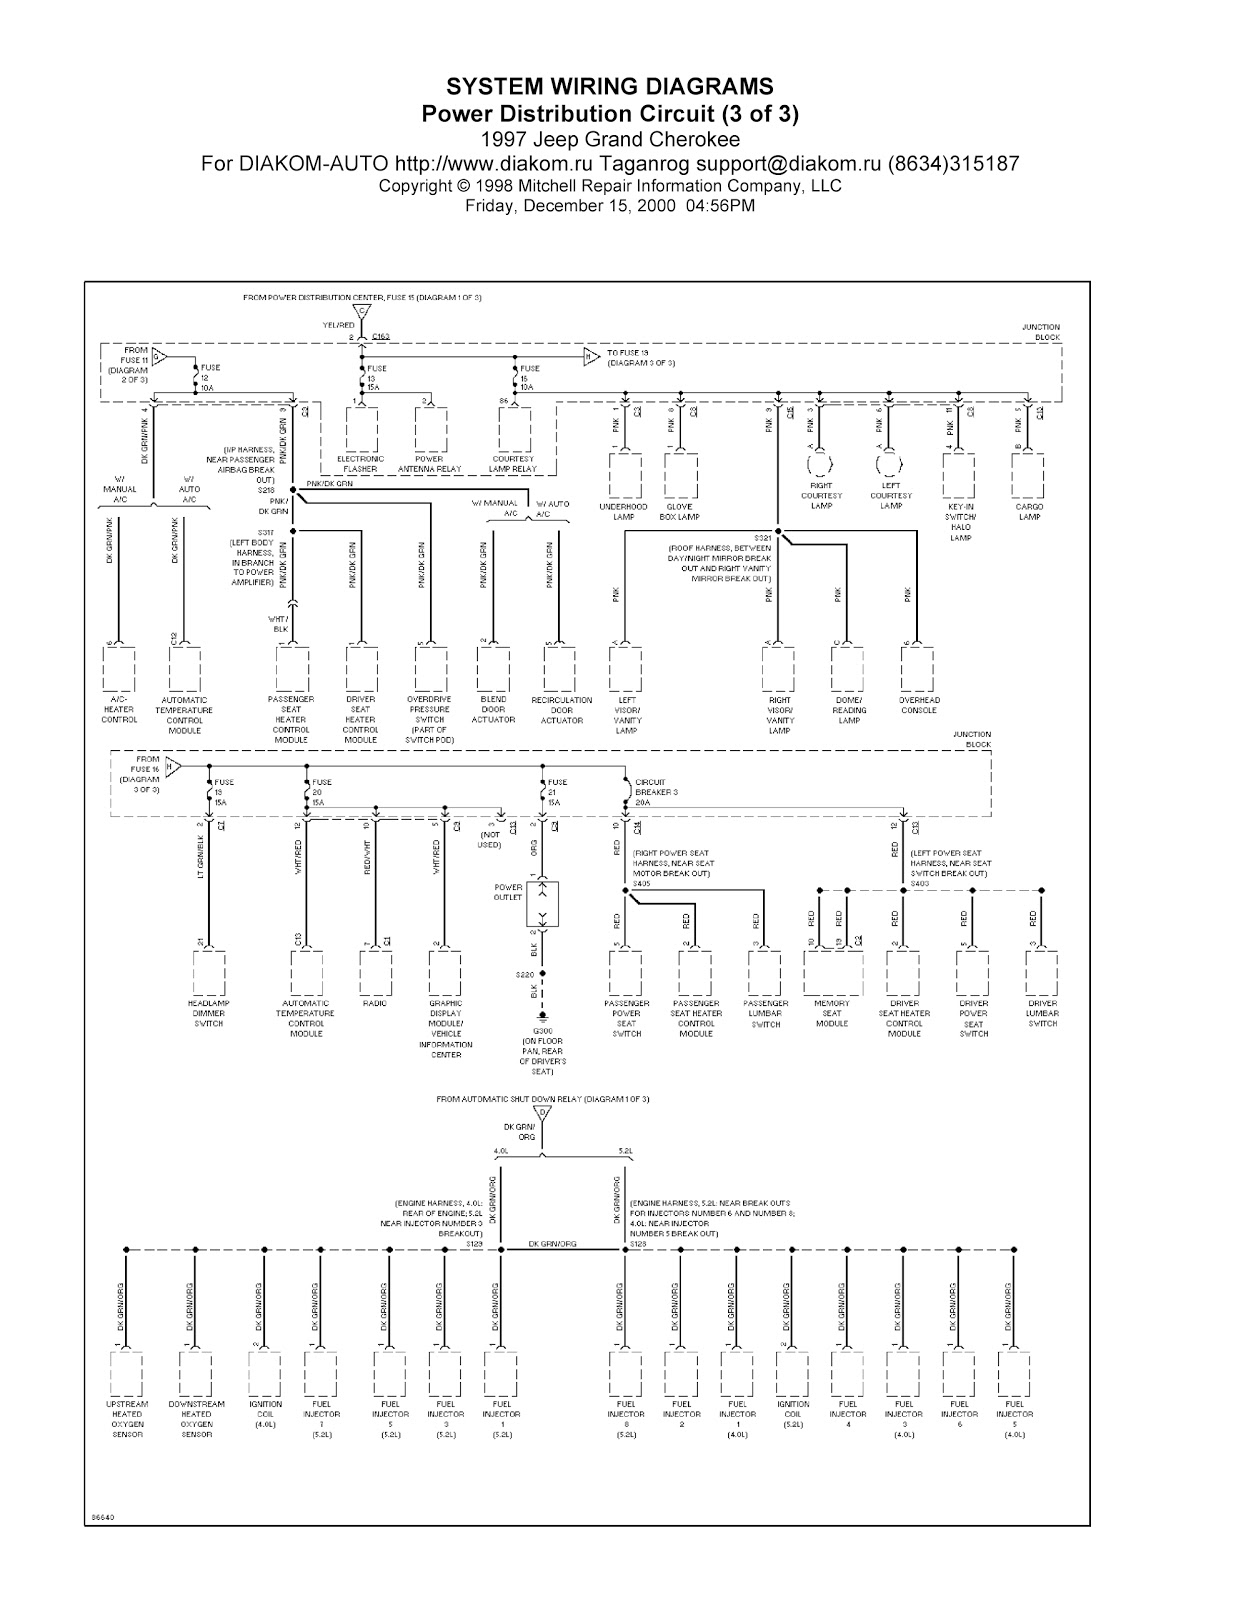 1995 Jeep Grand Cherokee Wiring Diagram Diagrams Ibanez Guitars 96 Coil Get Free Image About